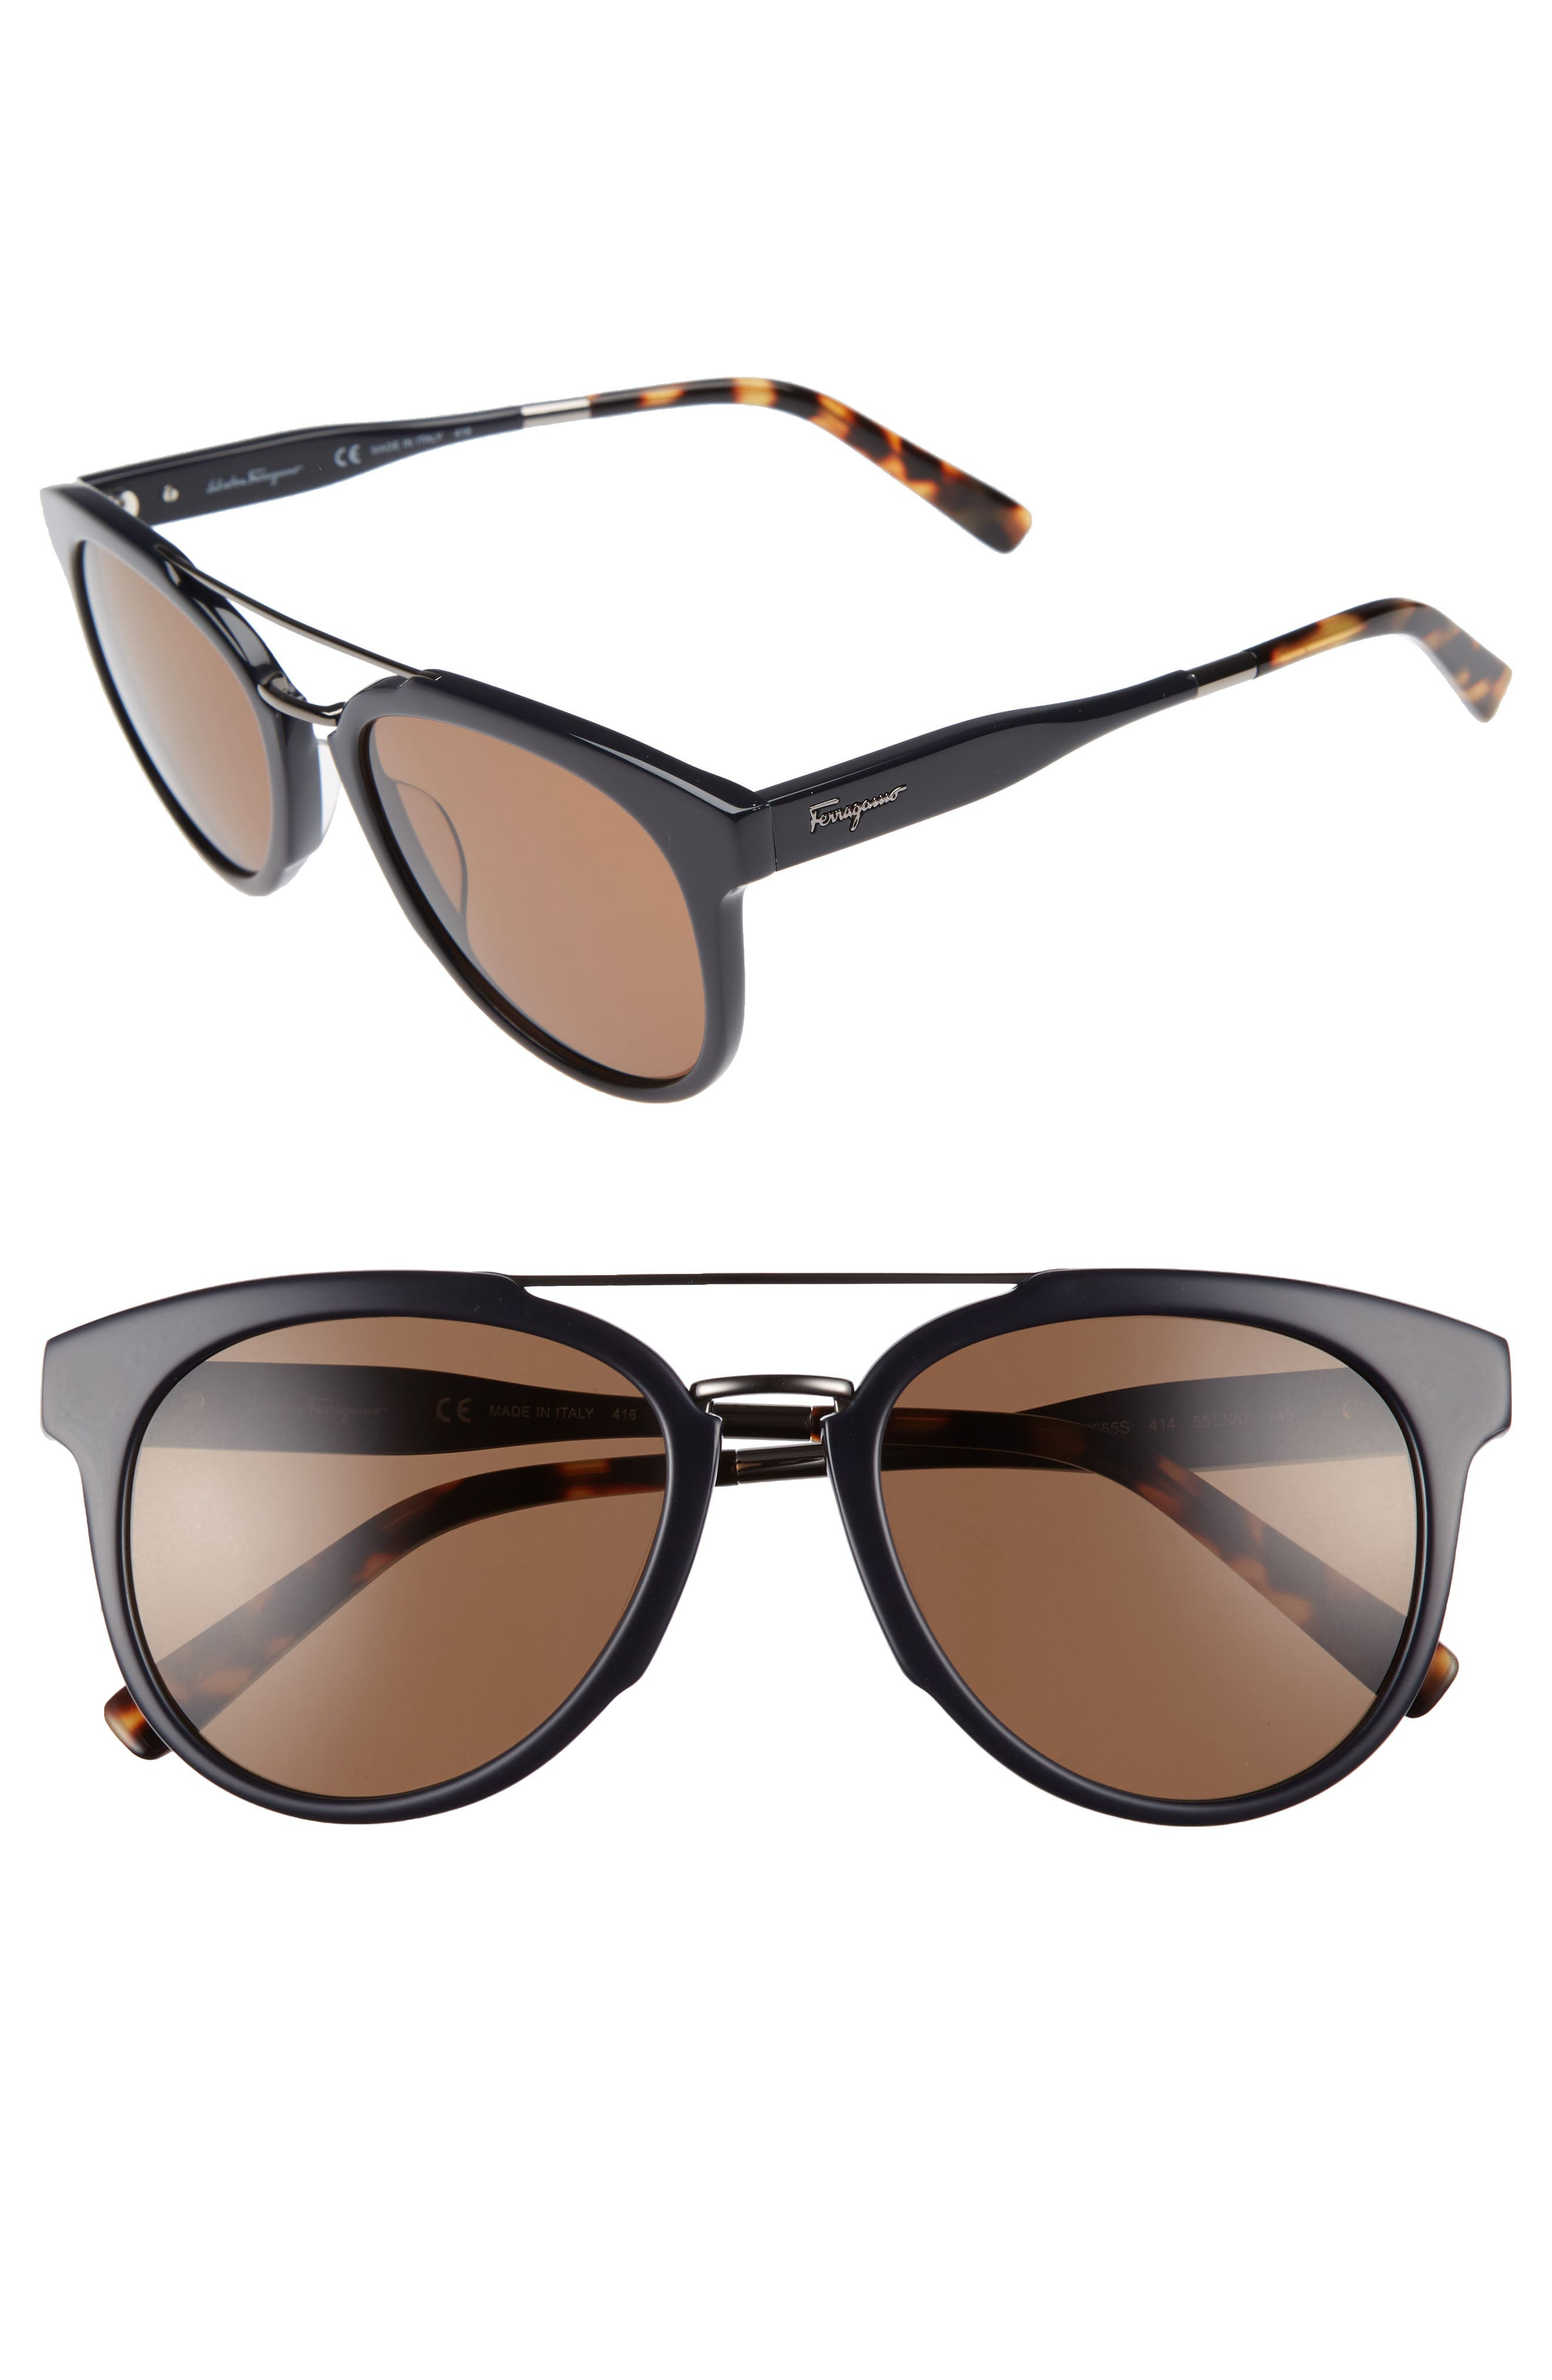 Main Image - Salvatore Ferragamo 55mm Sunglasses